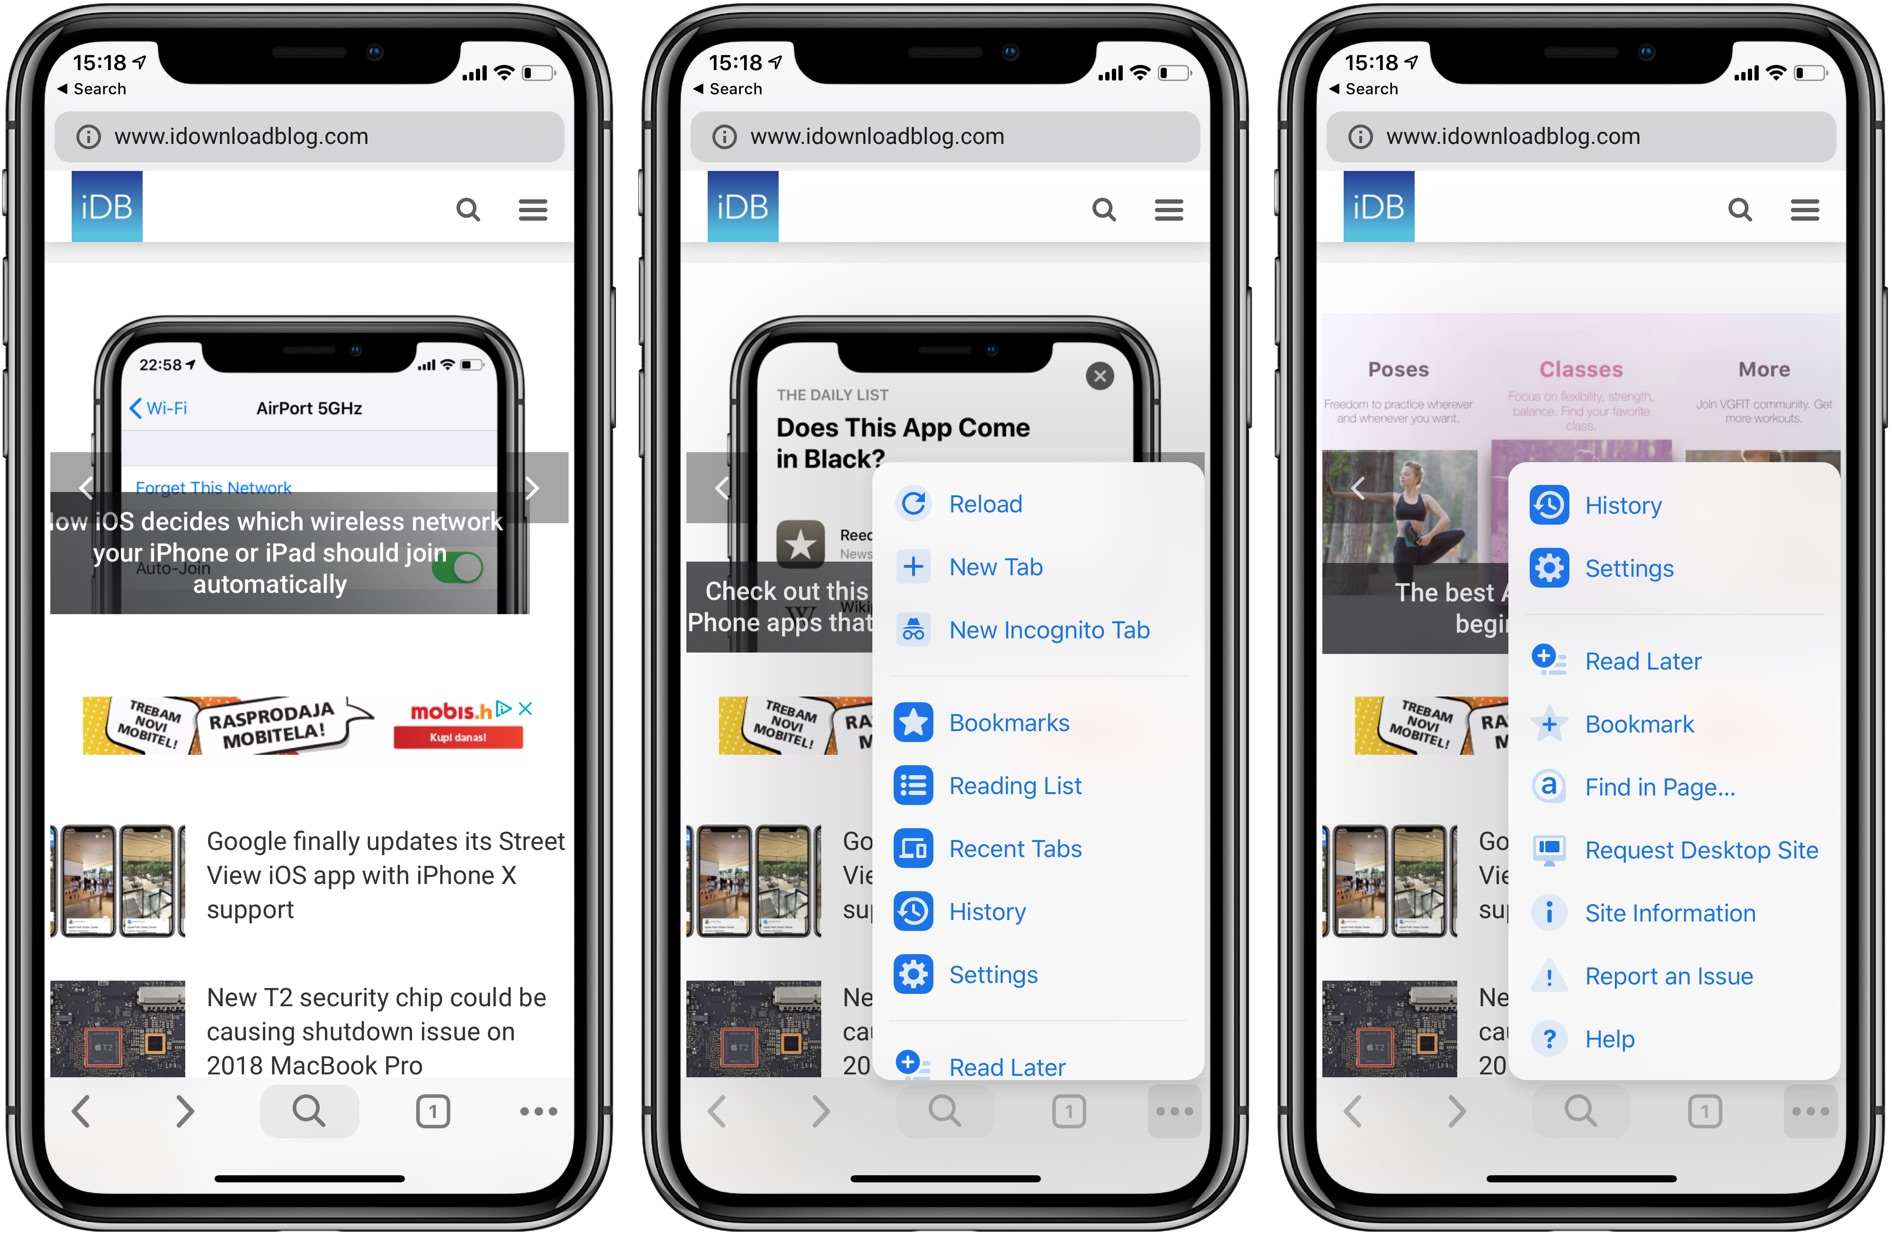 Aside from a rounder appearance, Material Design in Chrome for iOS moves your navigation controls to the bottom of the interface